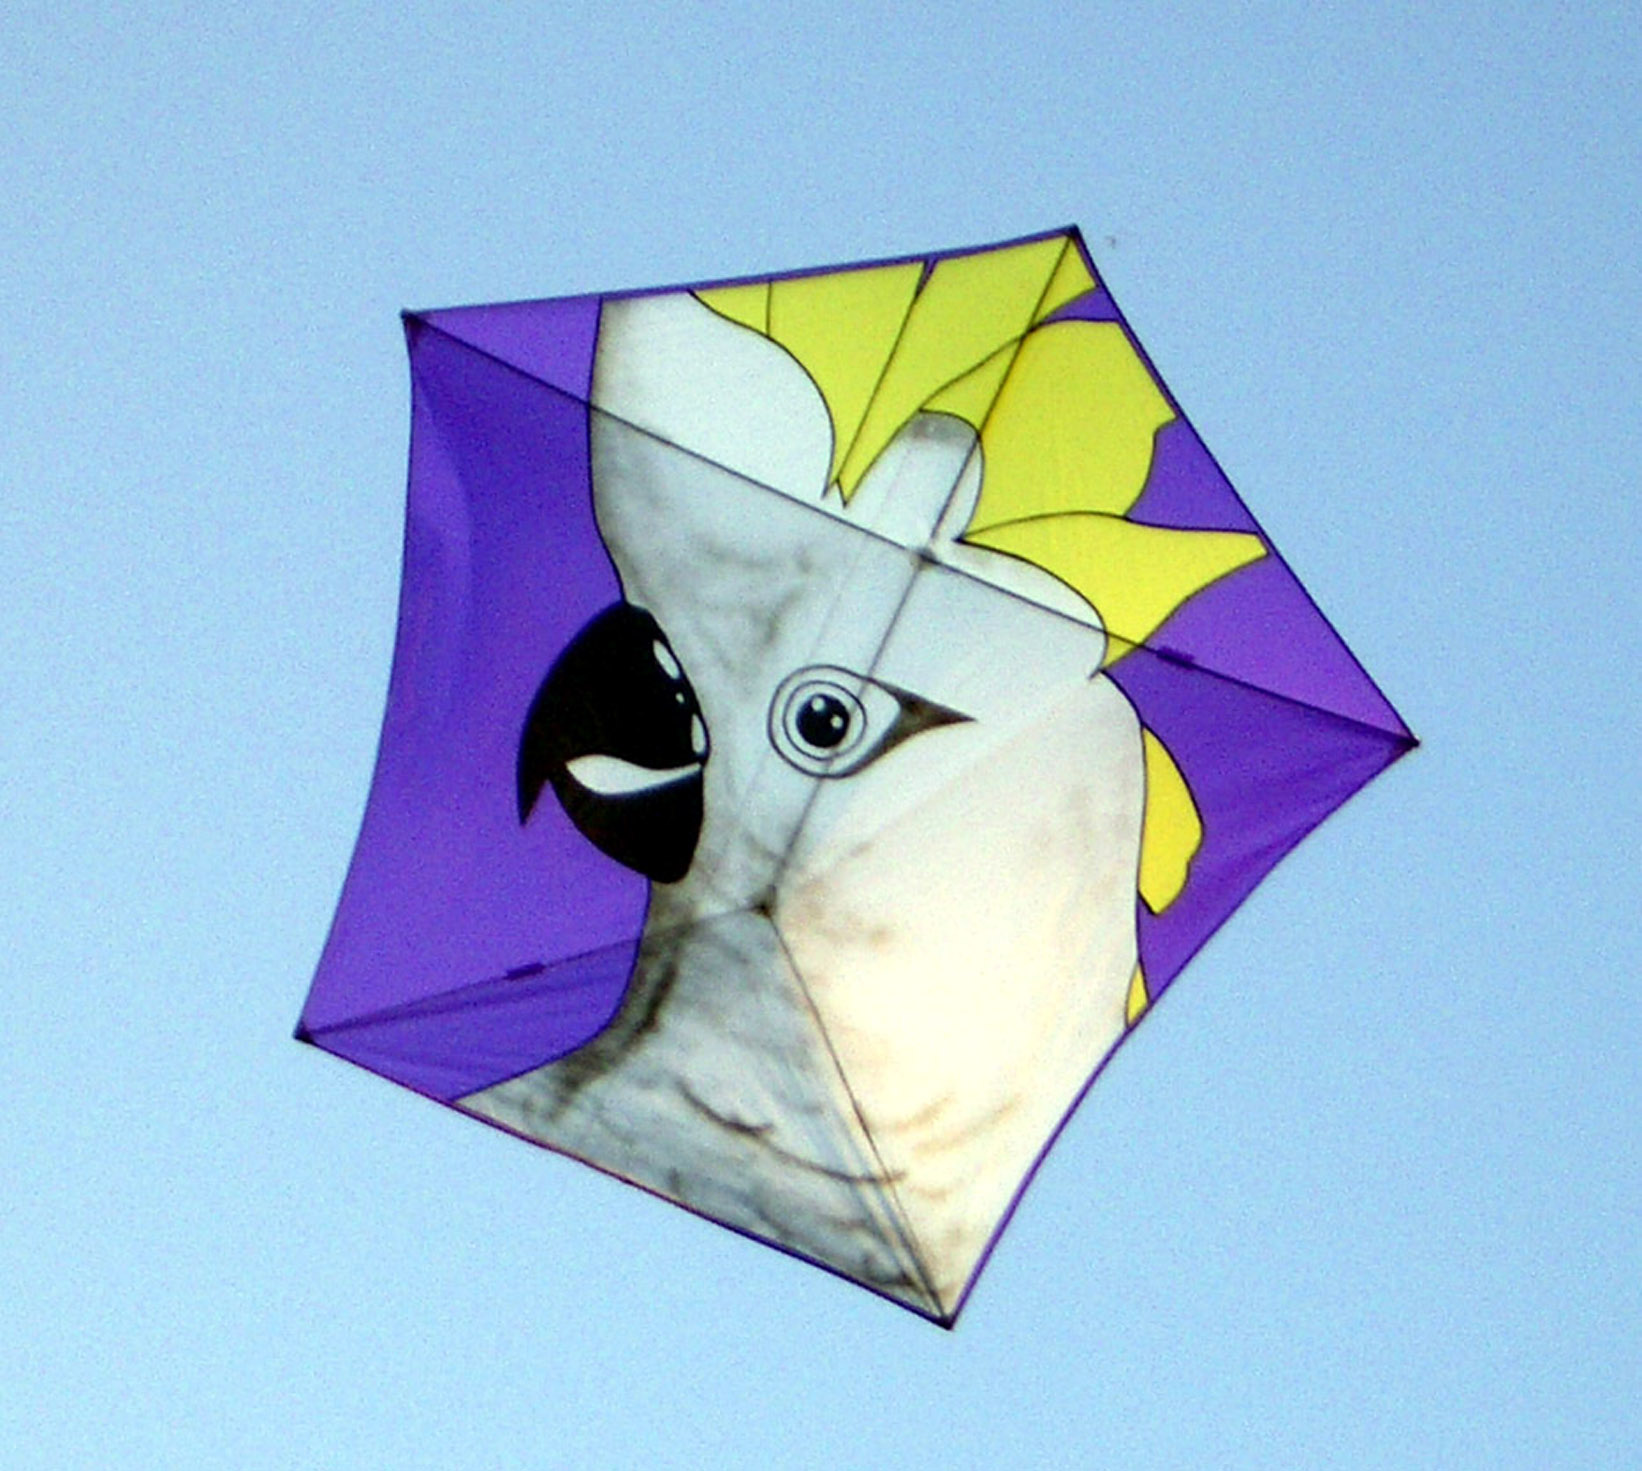 Galerry design ideas kites